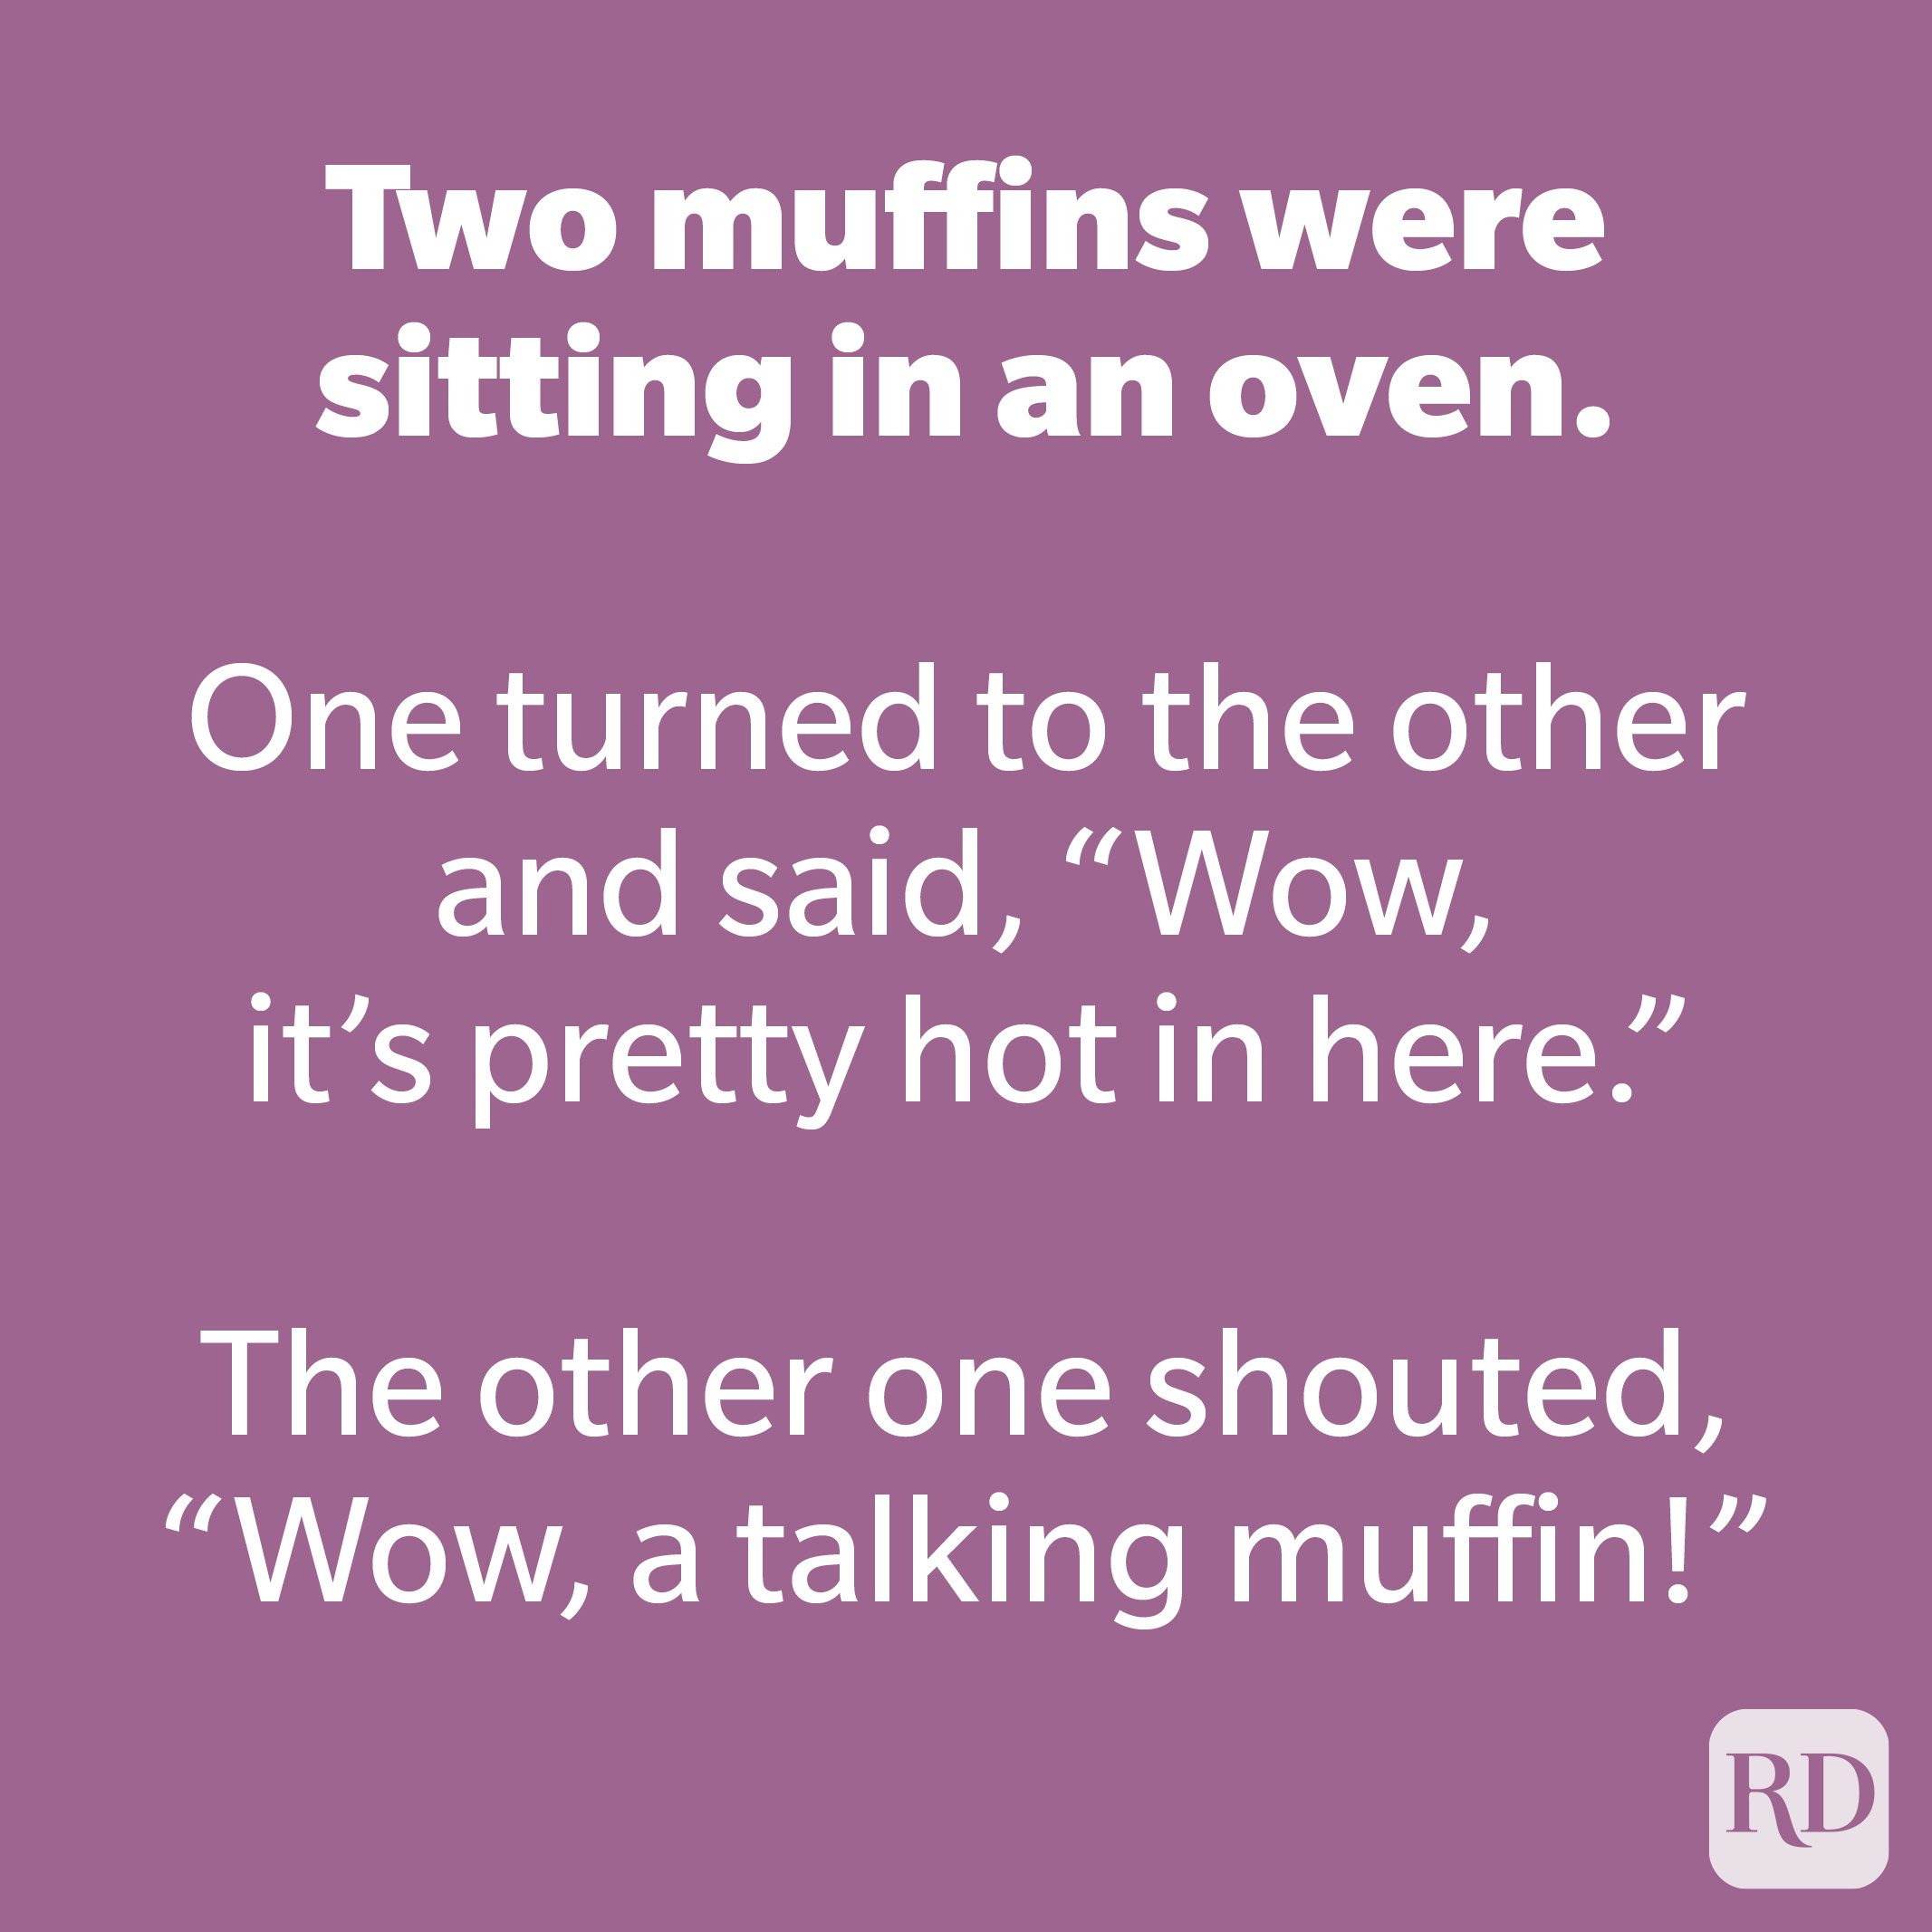 Two muffins were sitting in an oven.